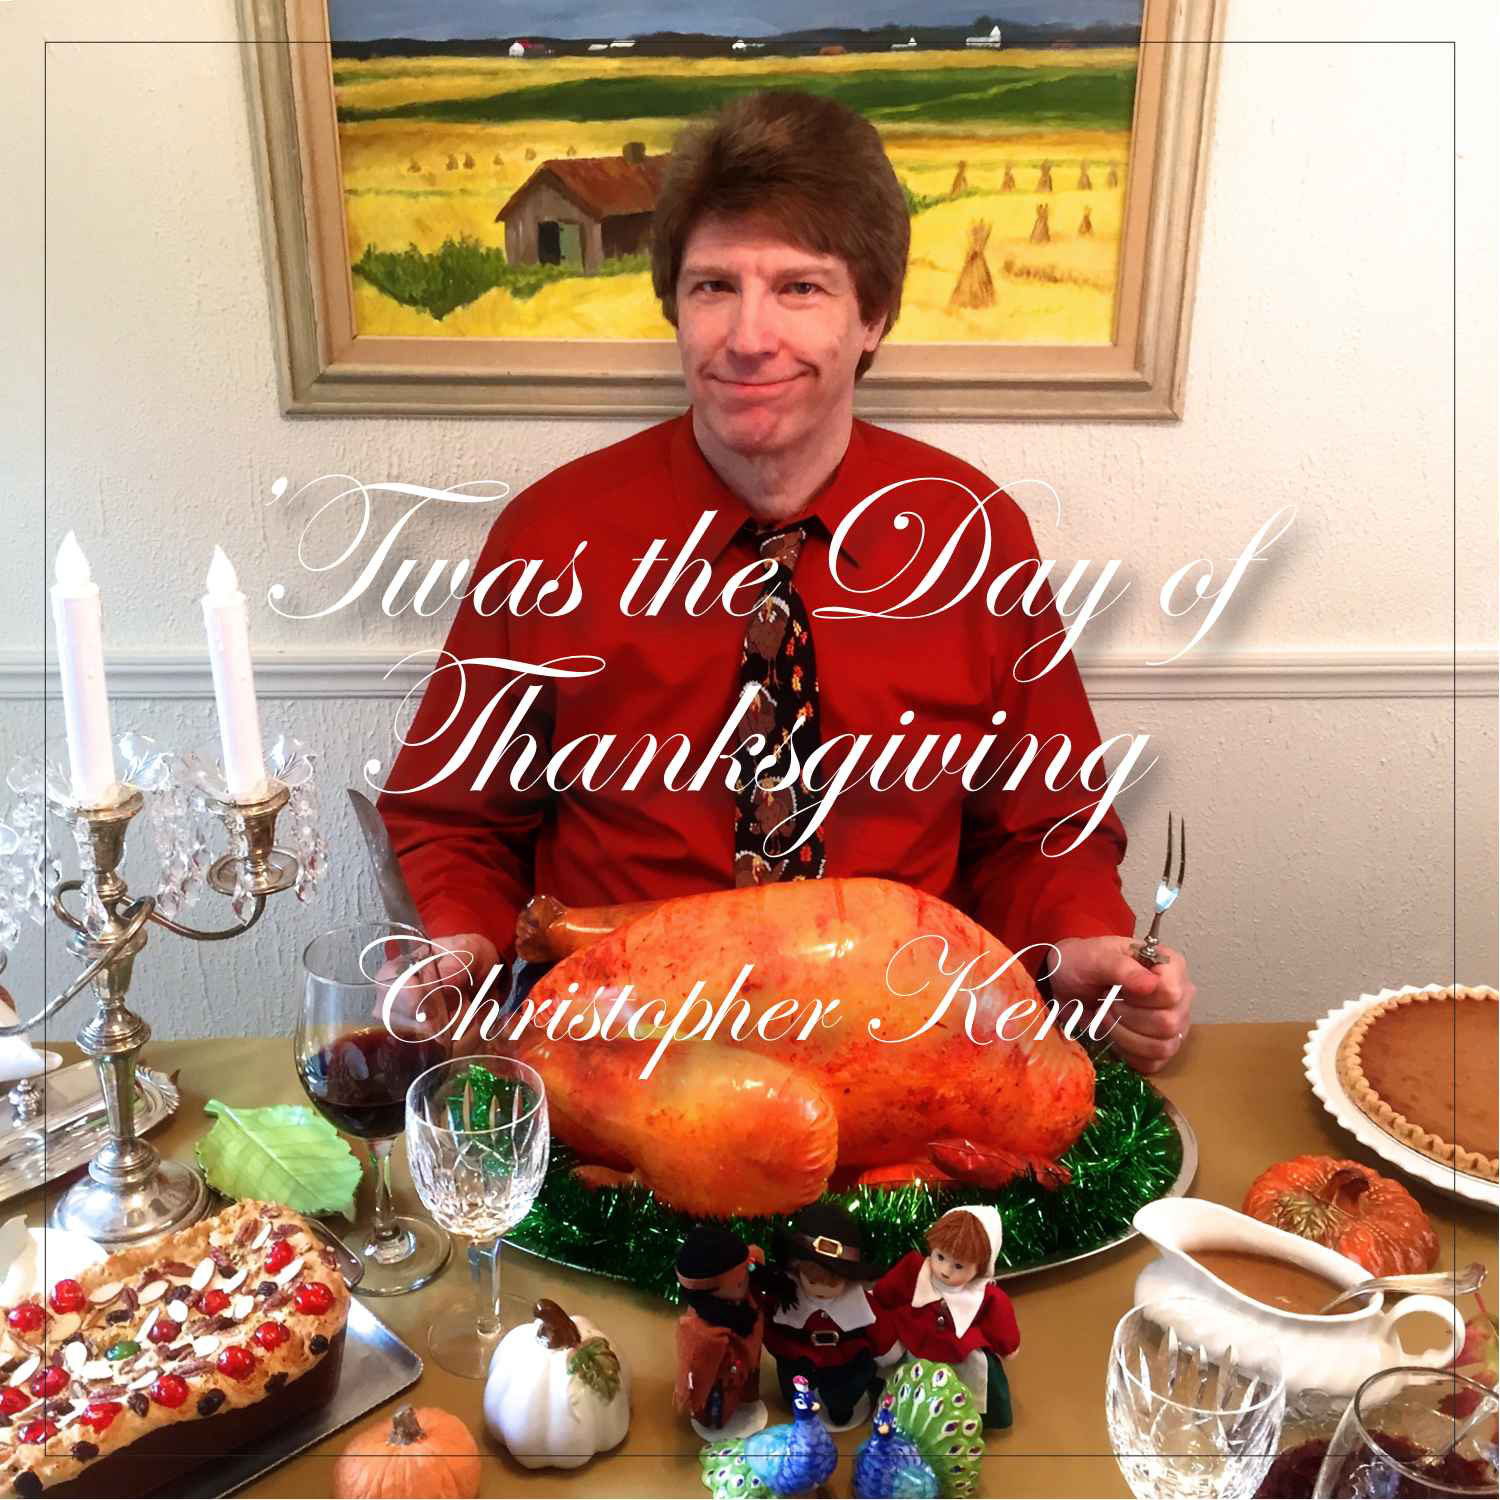 'Twas the Day of Thanksgiving...